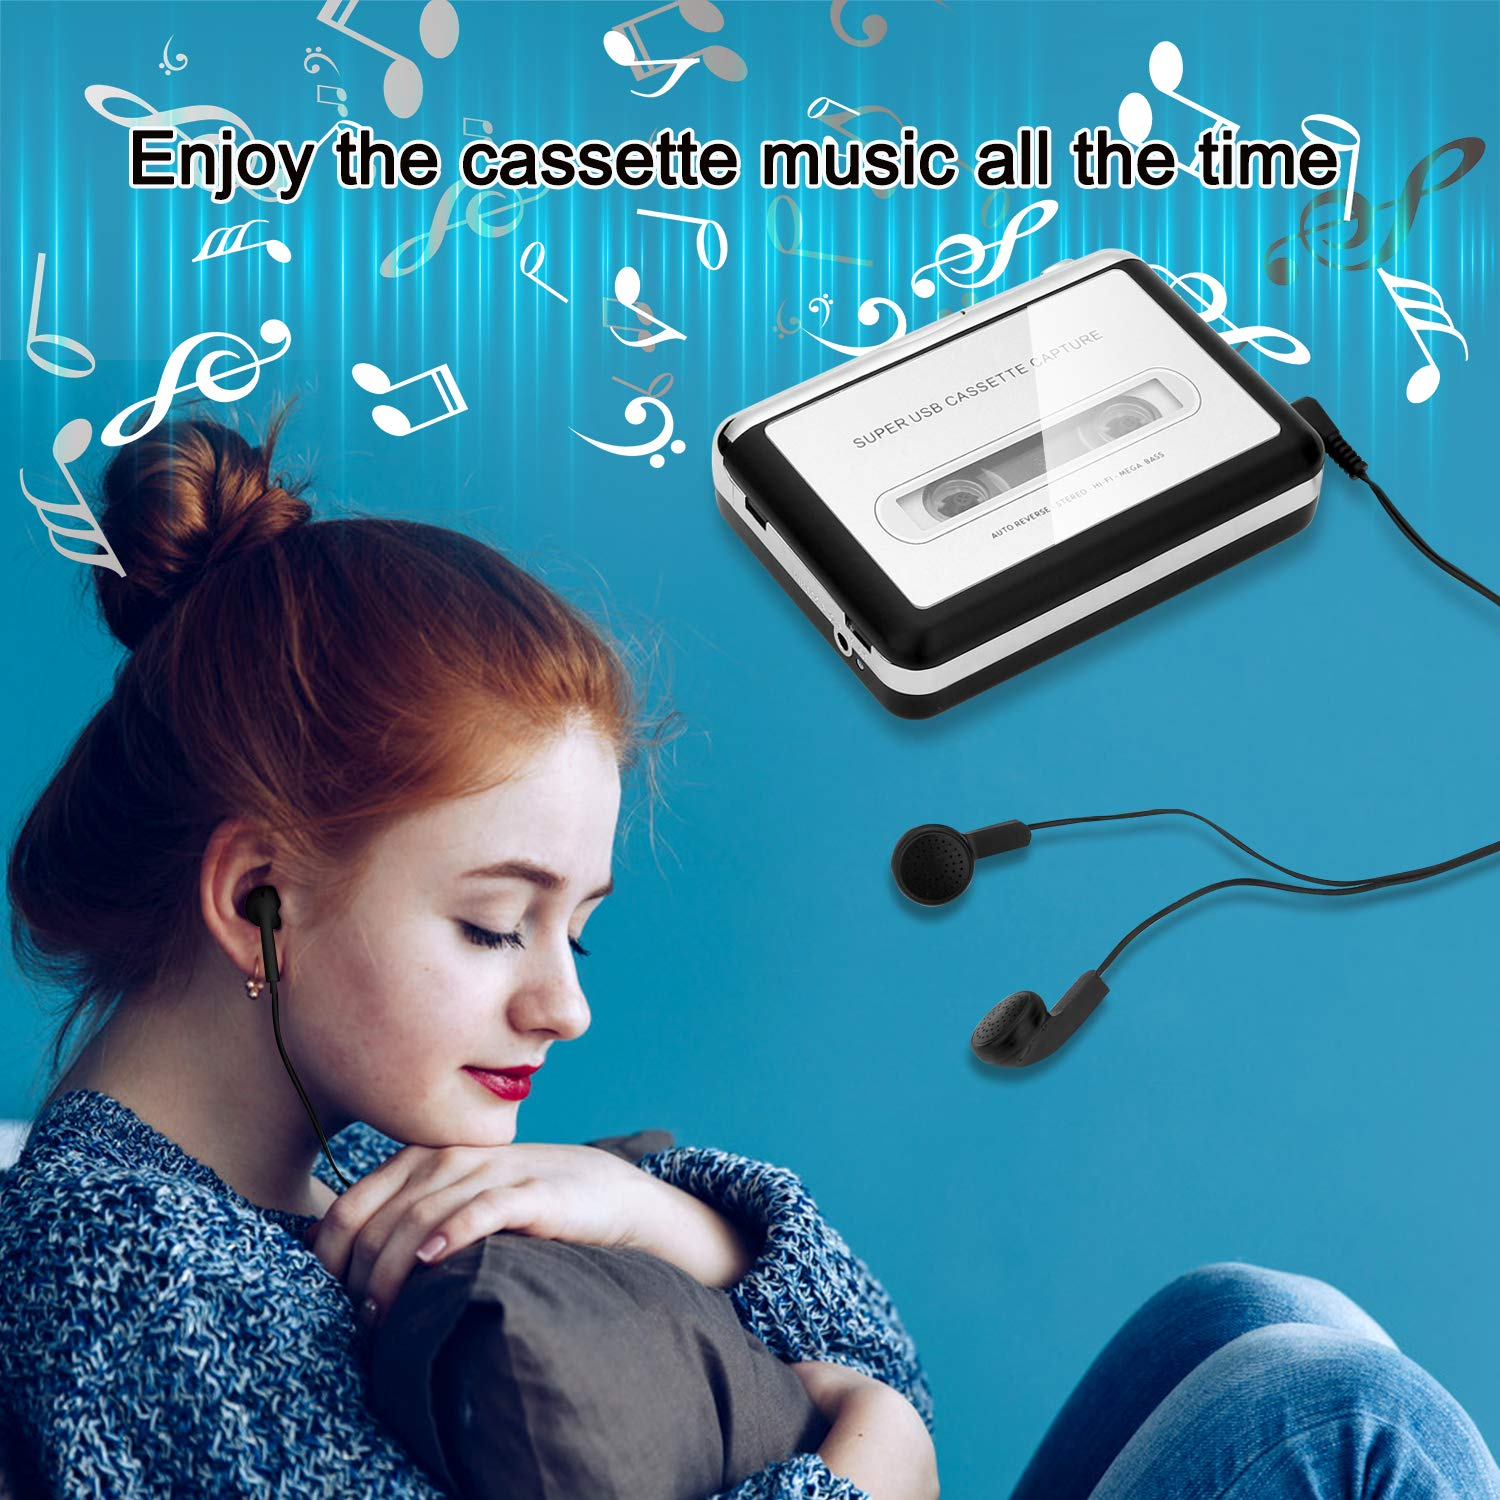 5 best cassette tape to mp3 converter